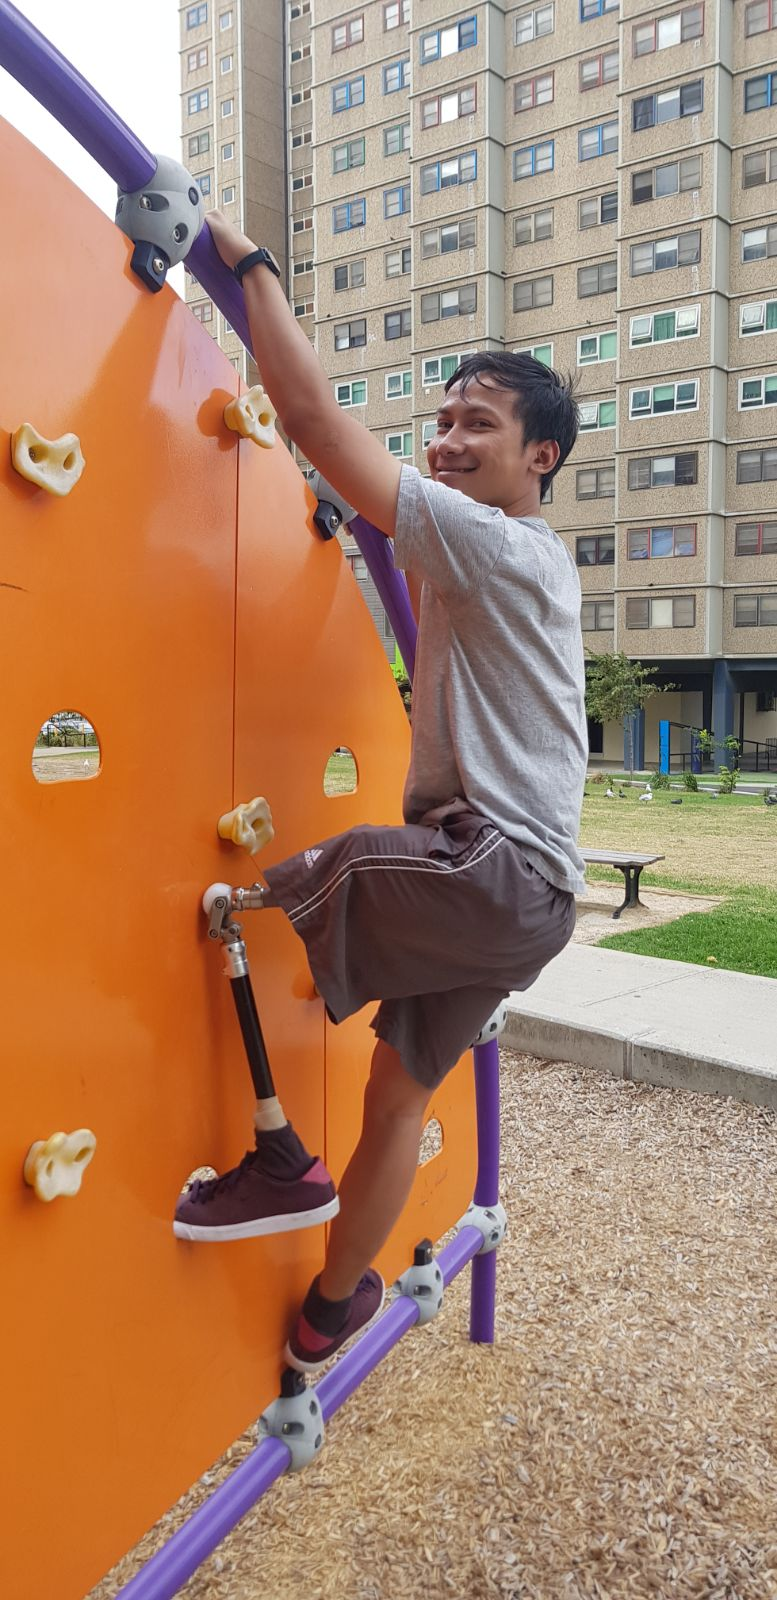 Mohammed on the climbing wall